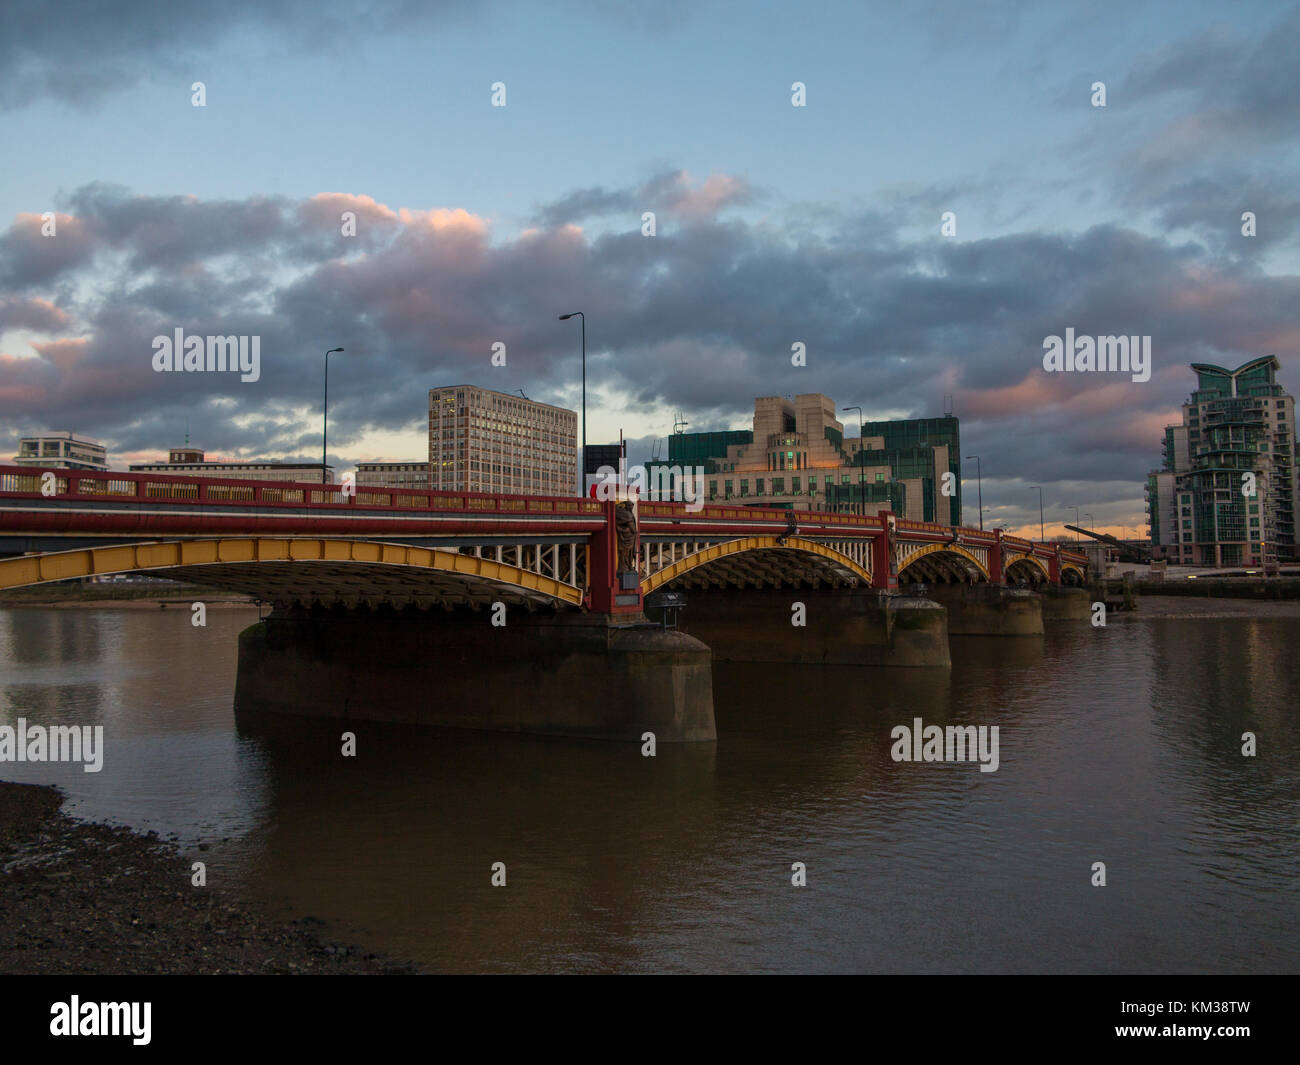 St George's Wharf and the River Thames - Stock Image